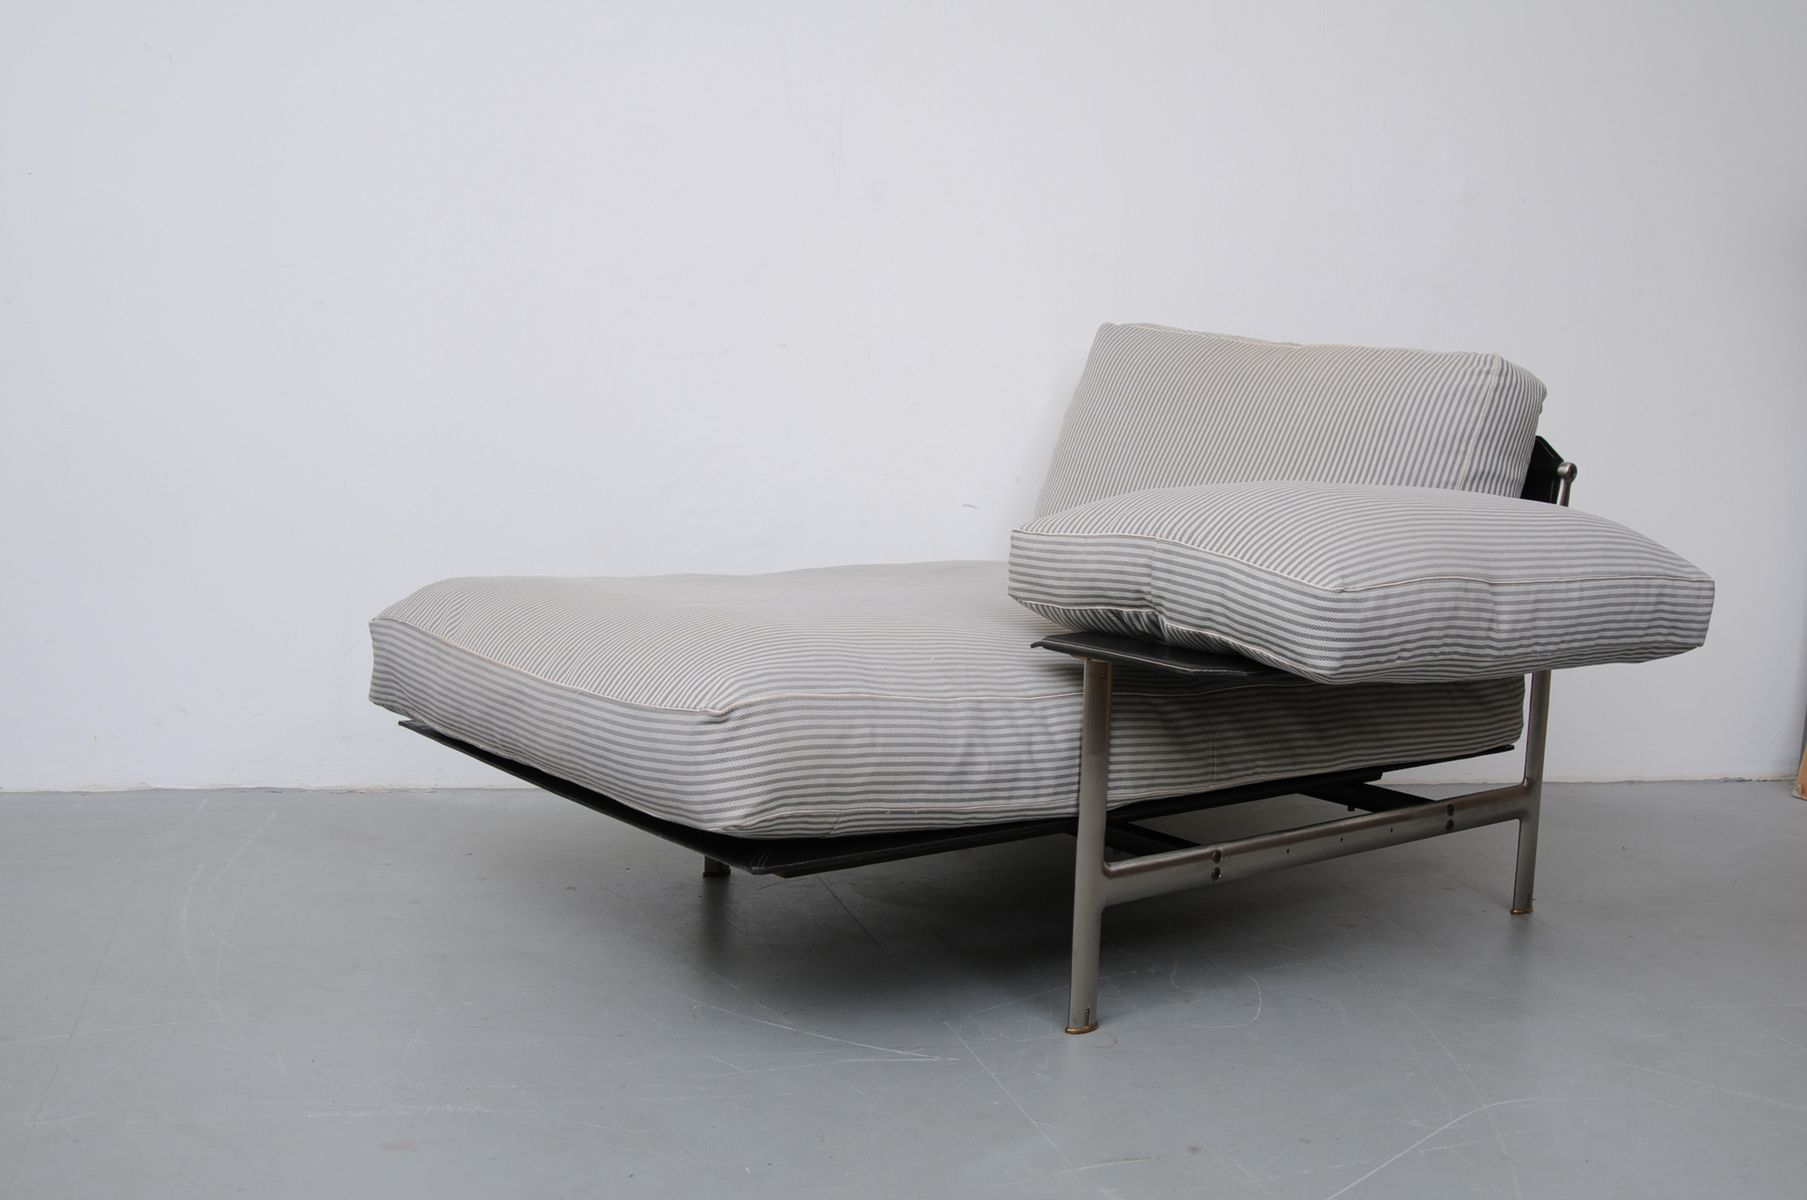 Diesis chaise longue by antonio citterio for b b italia for Chaise longues for sale uk